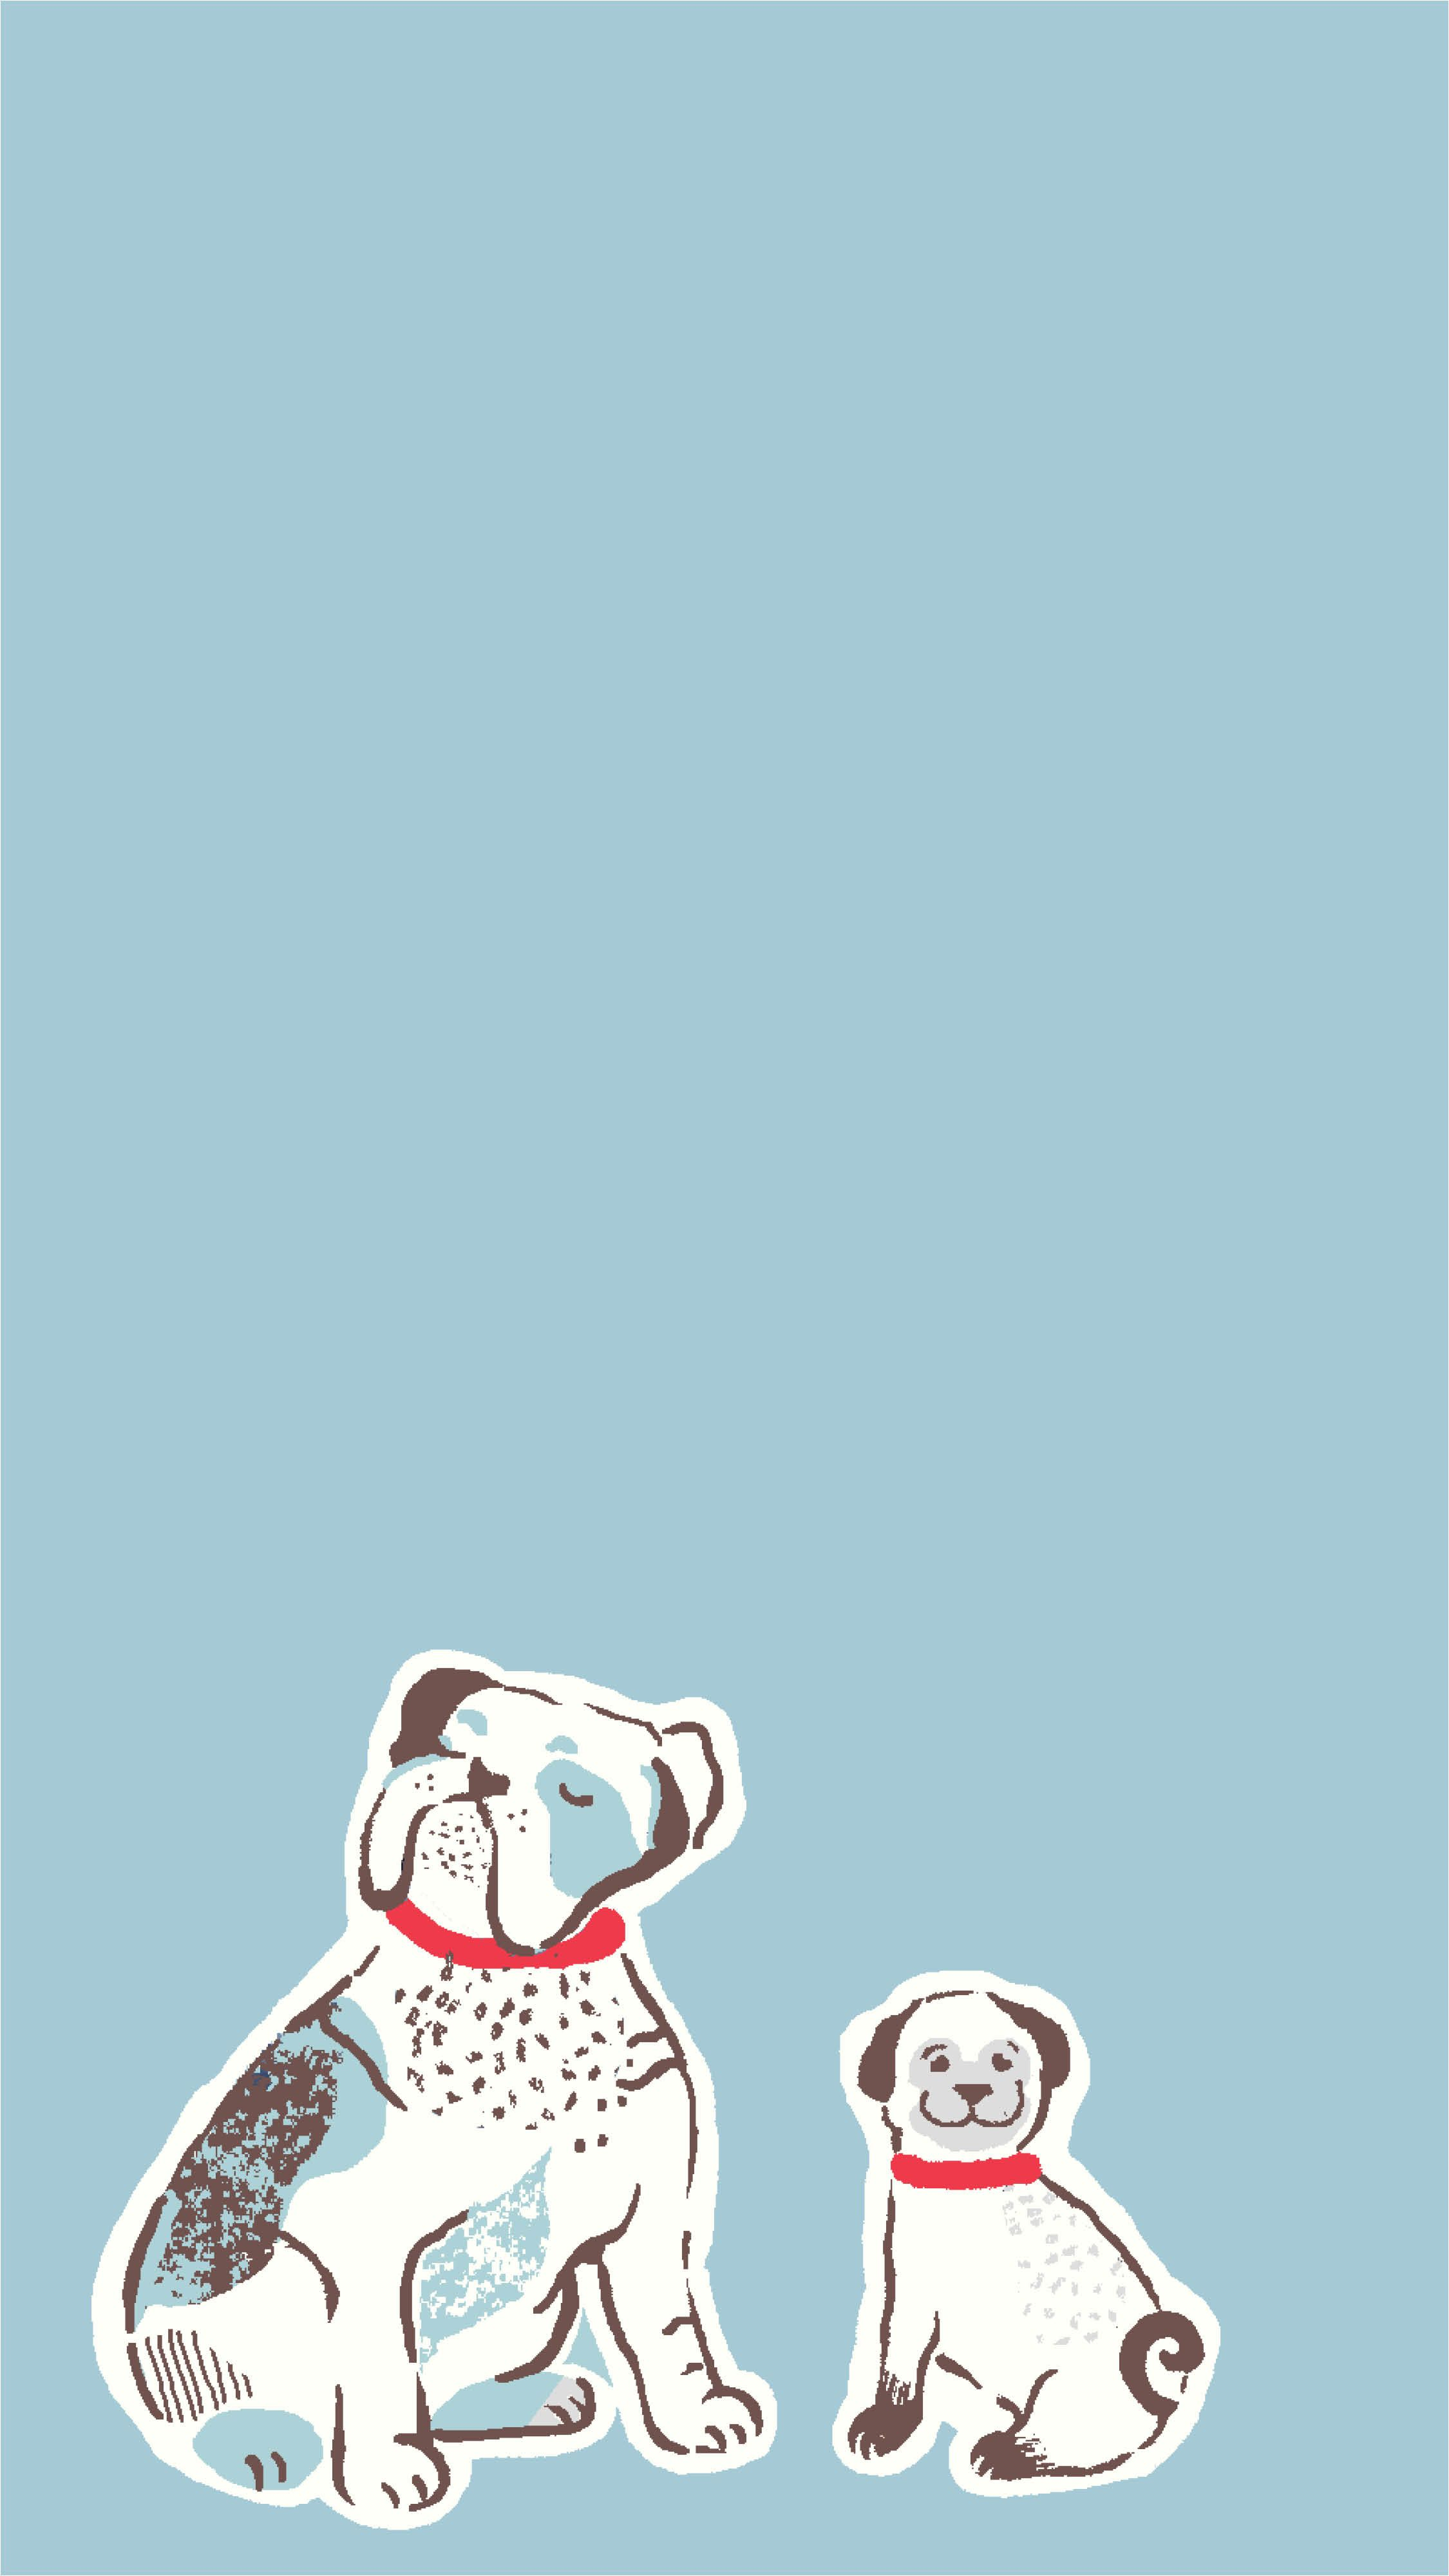 Pin By Ange On Phone Wallpaper Funny Art Cute Bulldogs Illustration